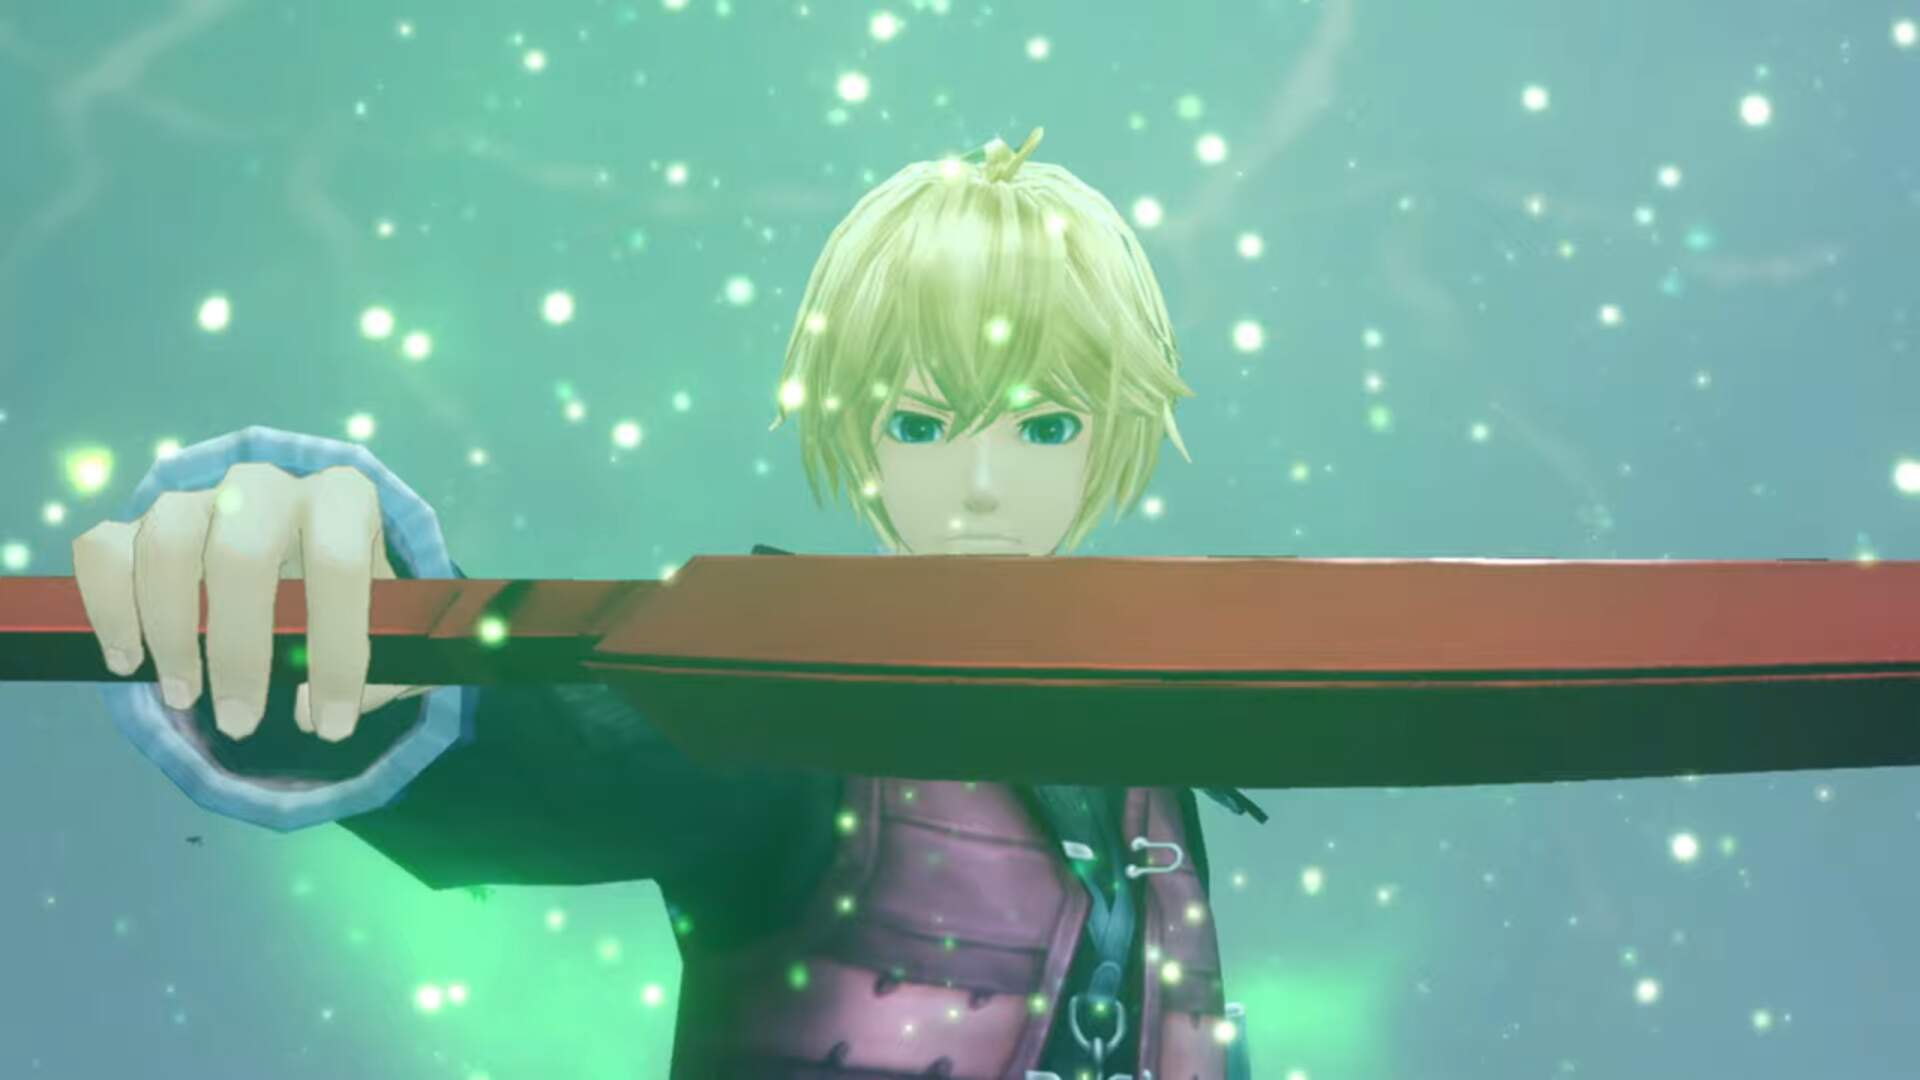 Xenoblade Chronicles Definitive Edition Arrives in May With New Story Content